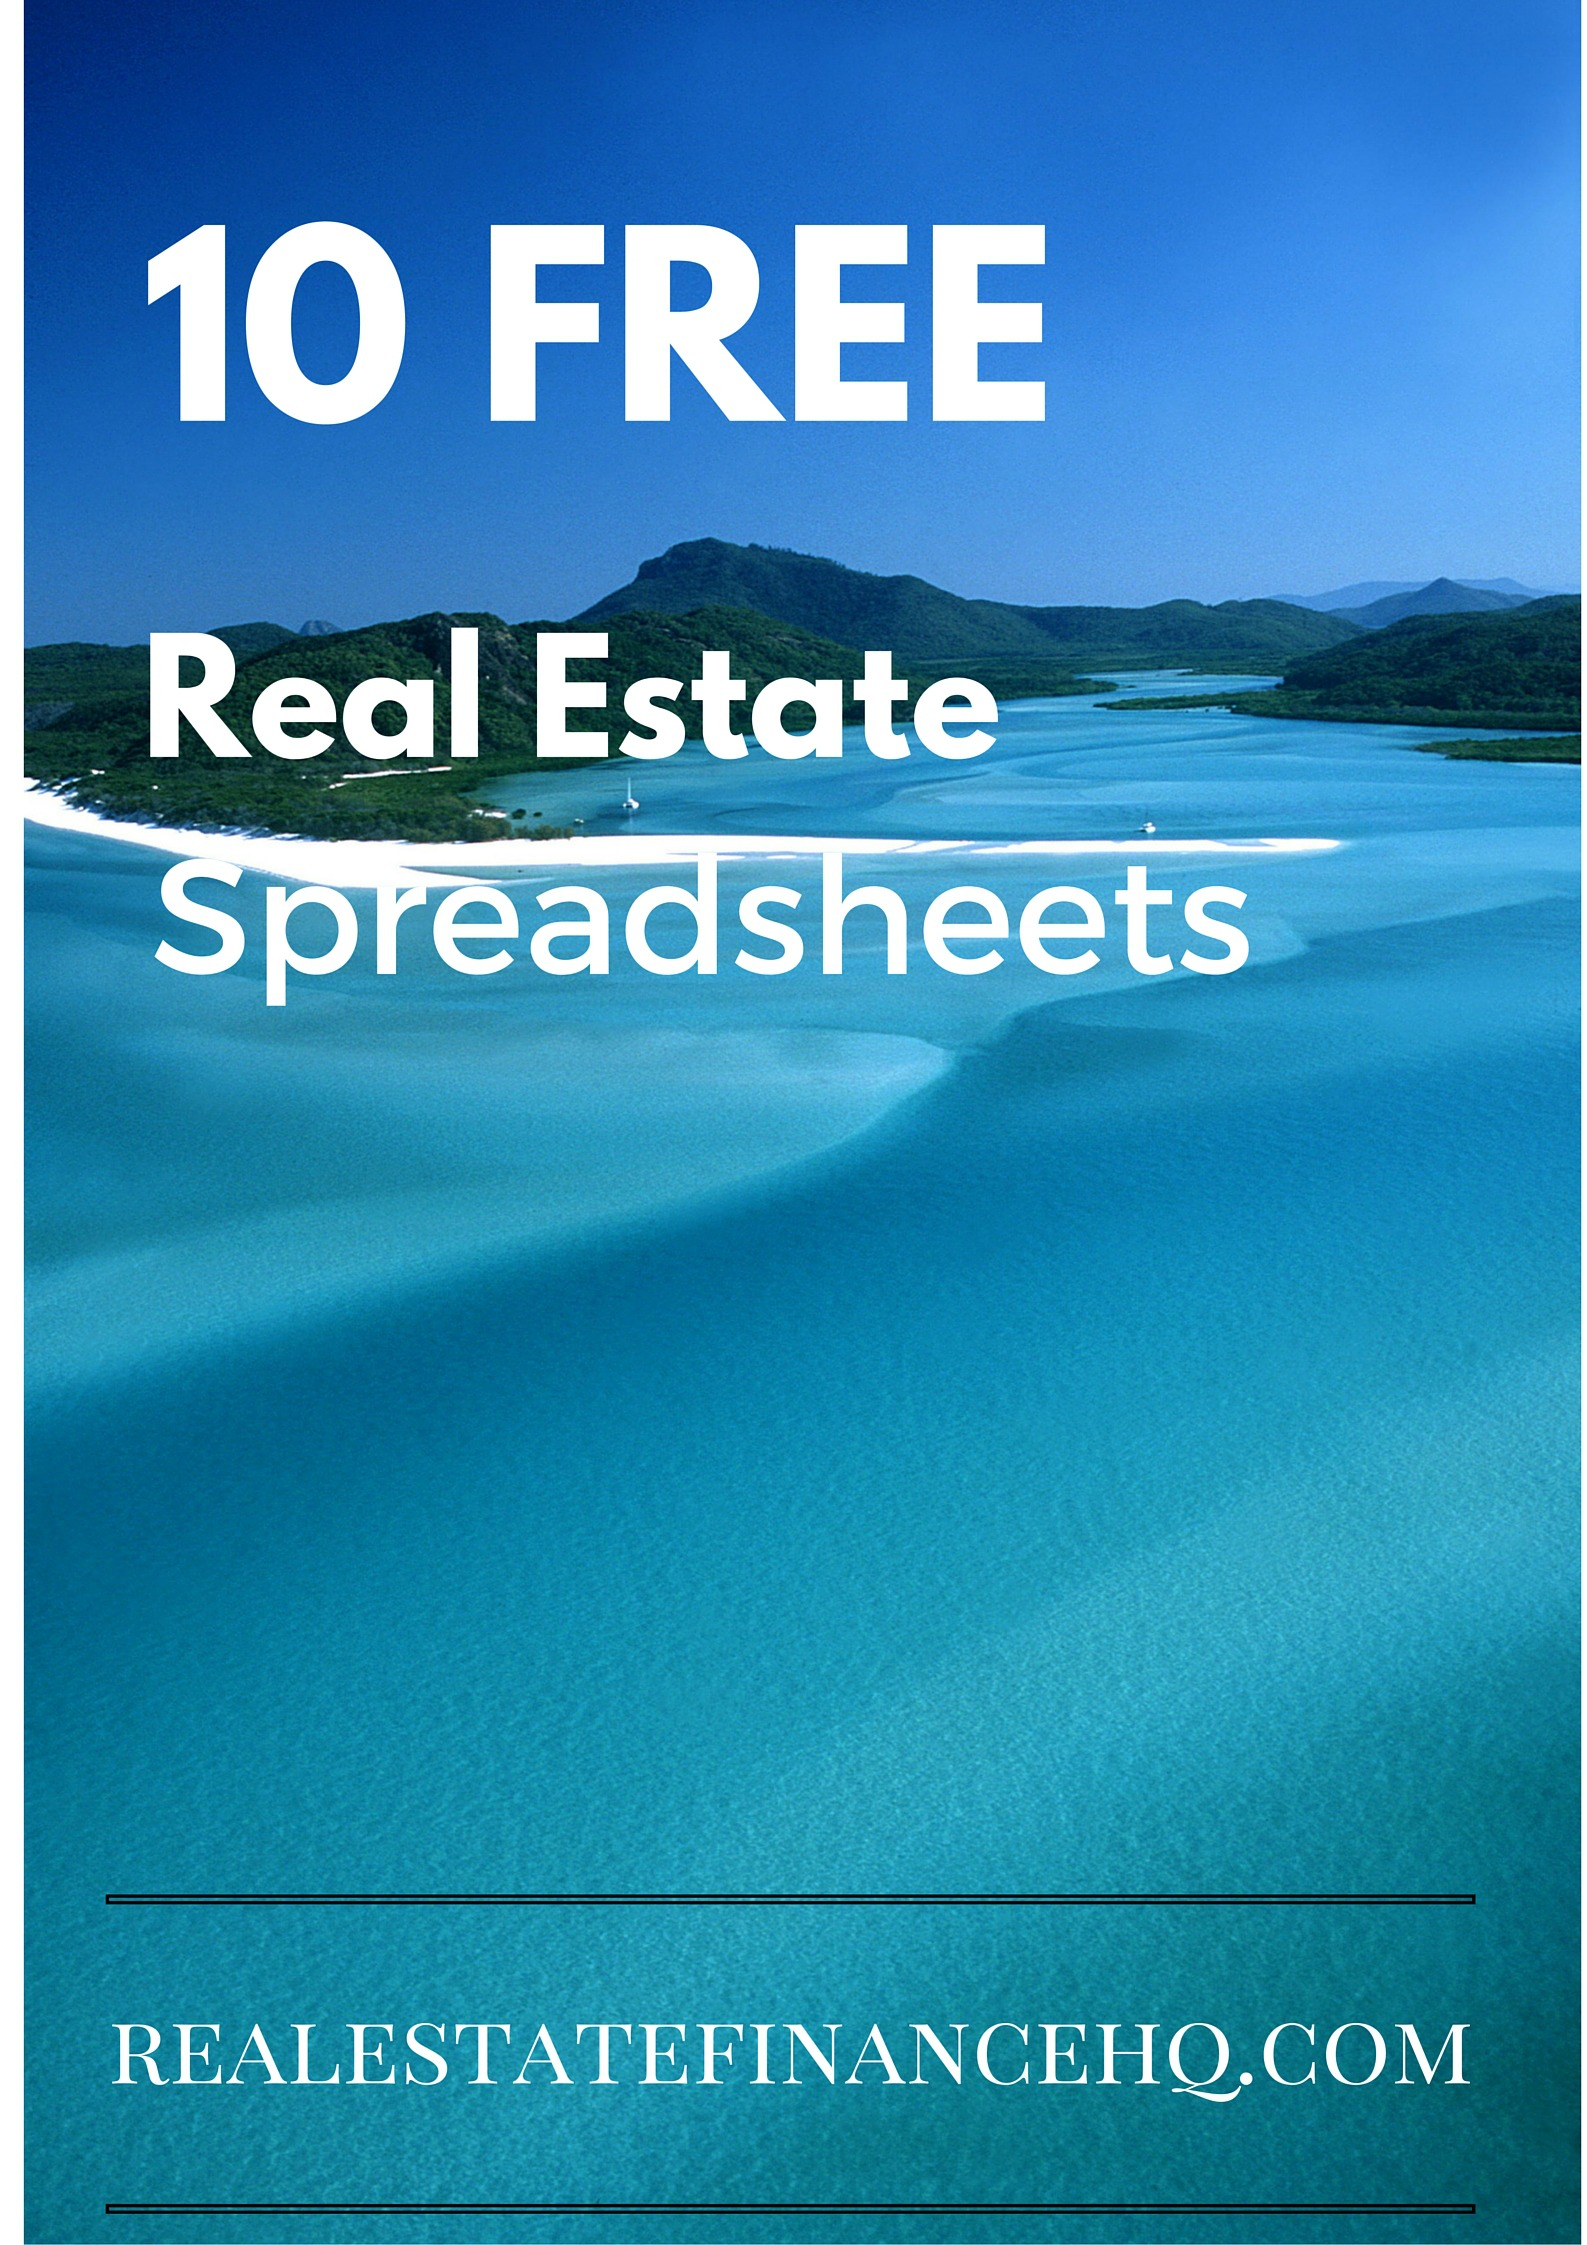 House Flipping Budget Spreadsheet Template With 10 Free Real Estate Spreadsheets  Real Estate Finance